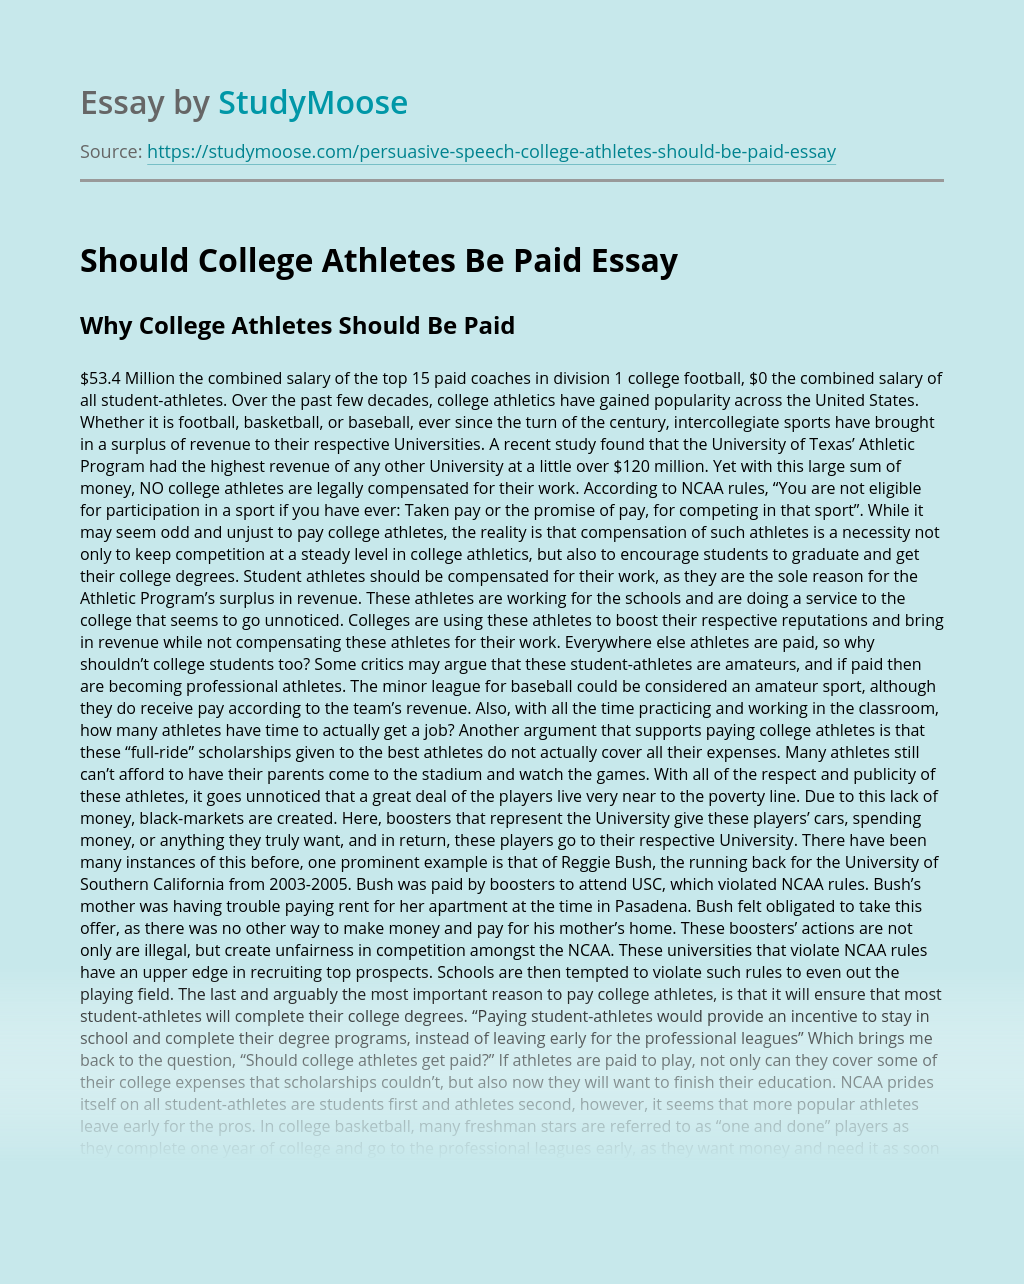 Argumentative Essay Should College Athletes Be Paid